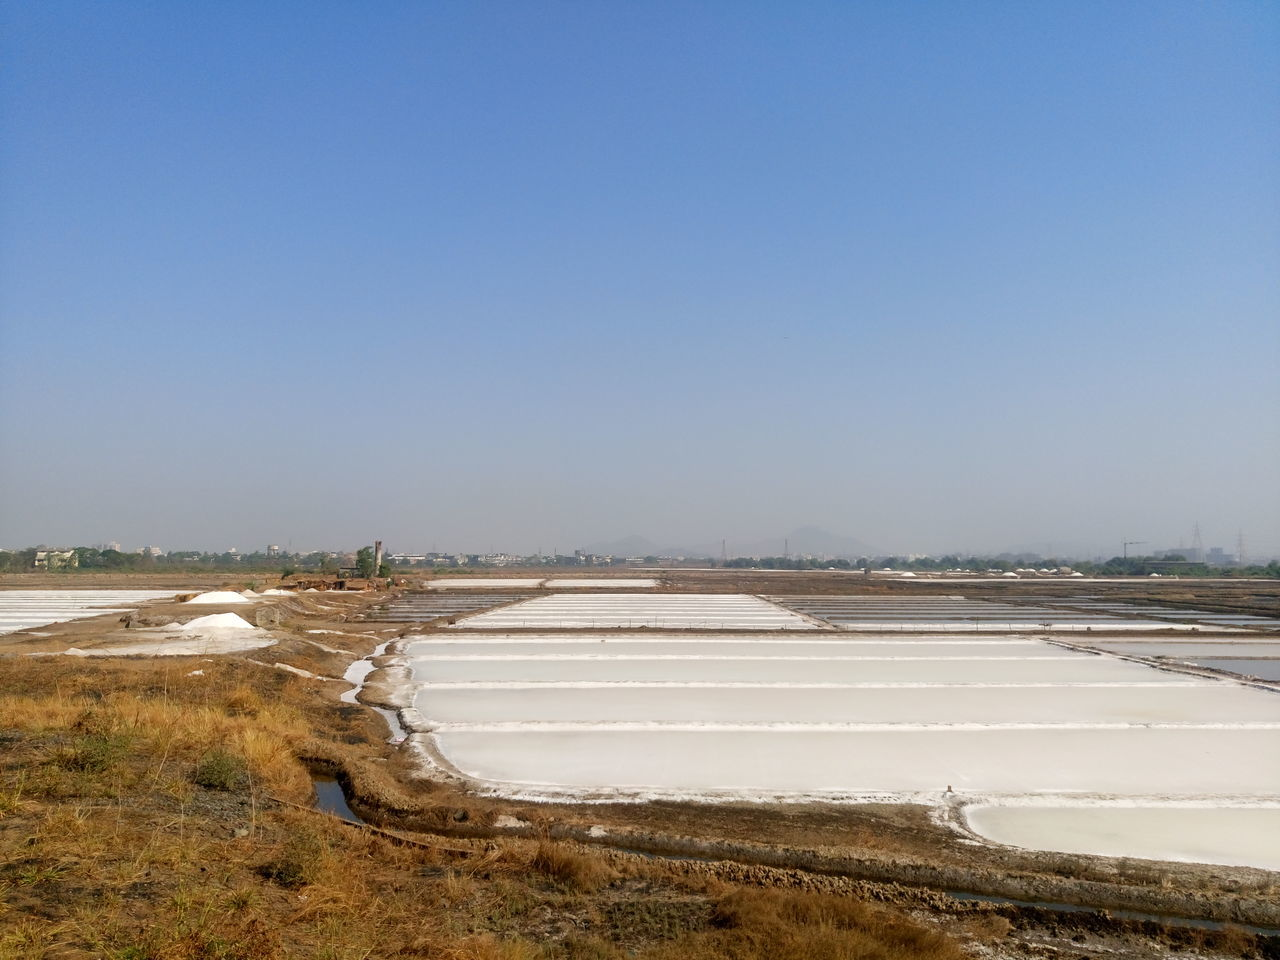 Beauty In Nature Clear Sky Day Nature No People Outdoors Salt - Mineral Salt Basin Salt Flat Water